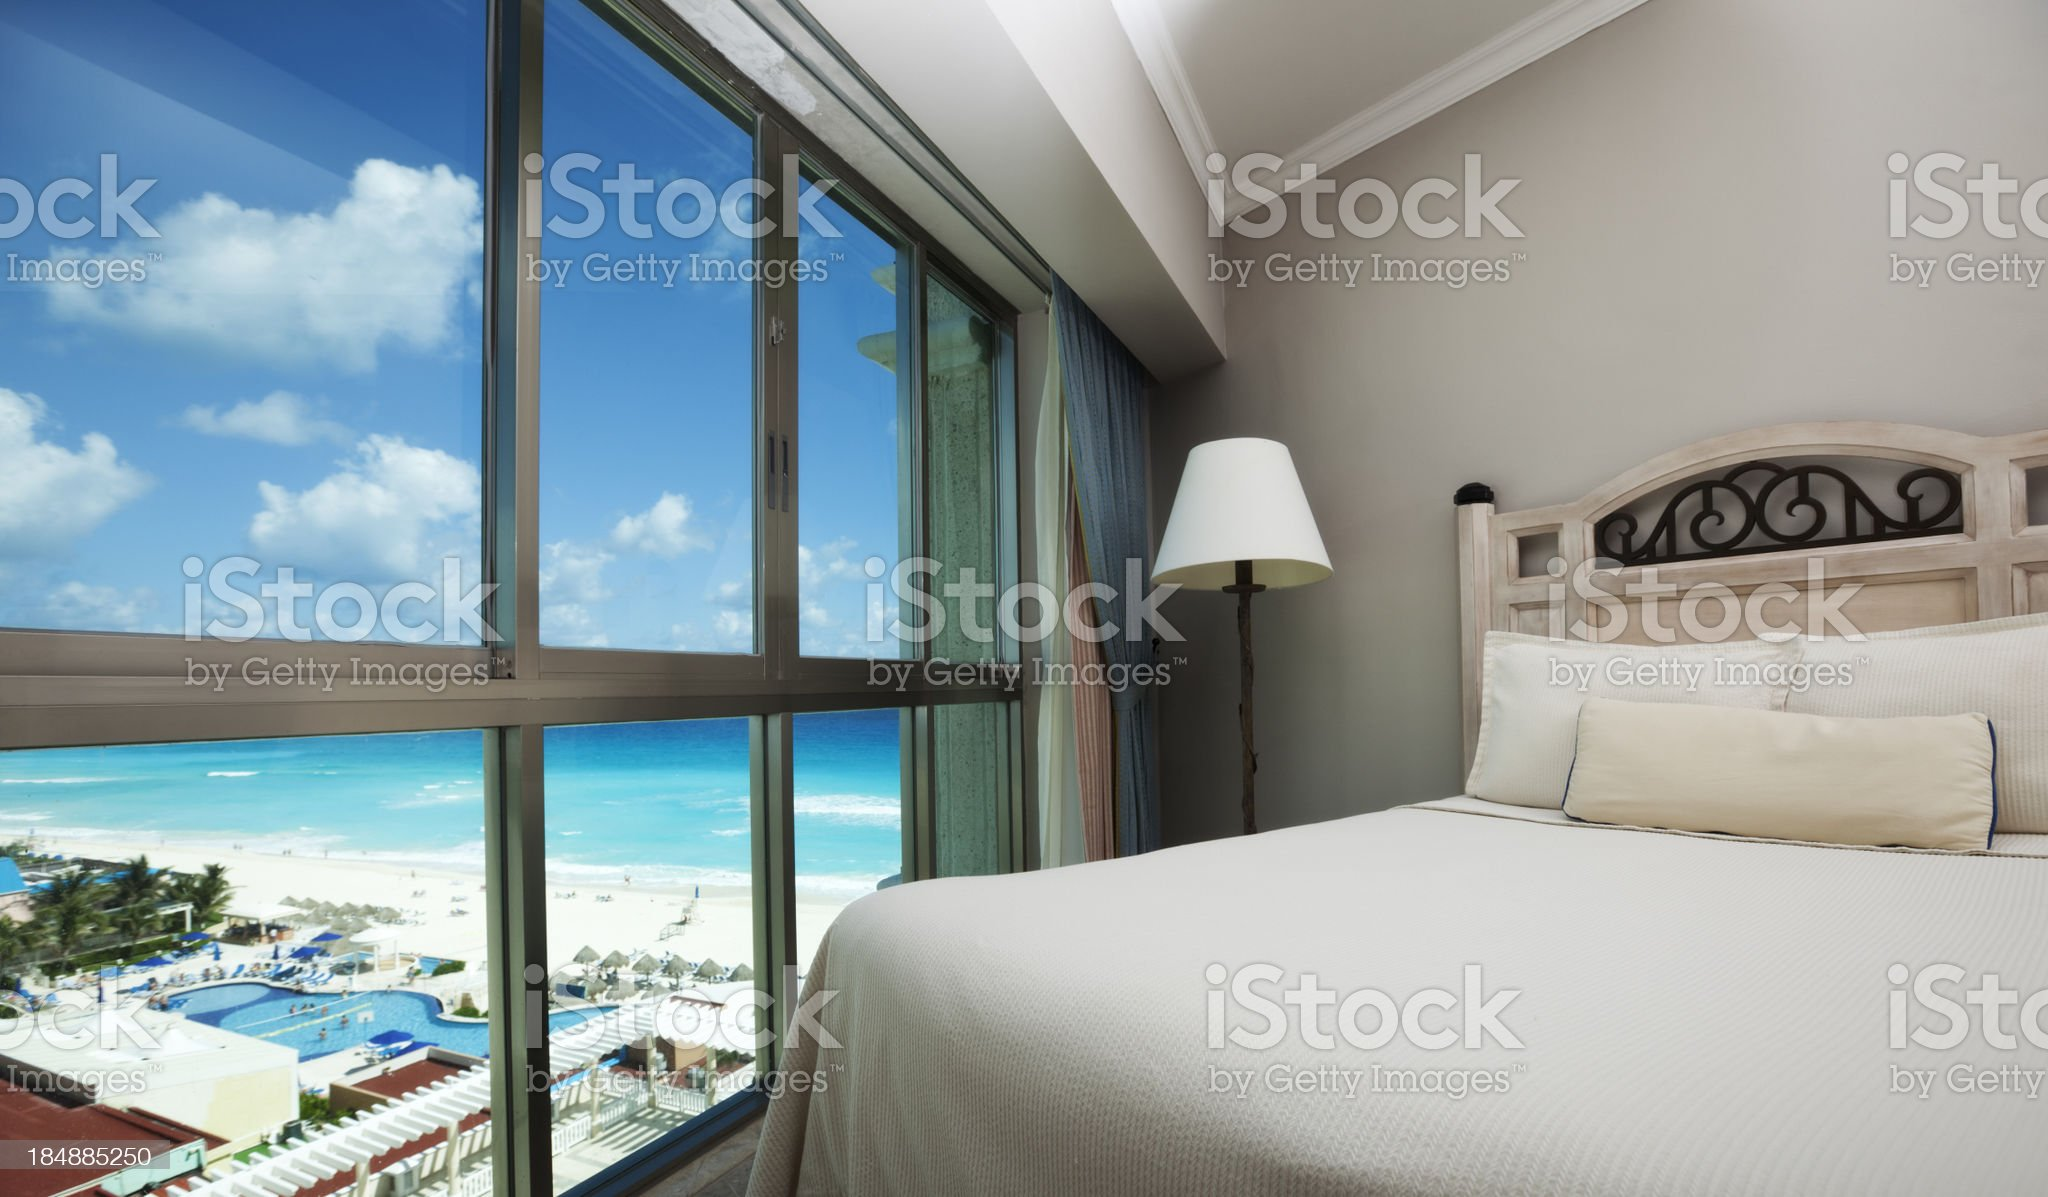 Beach Hotel Room with Scenic Caribbean Sea View through Window royalty-free stock photo